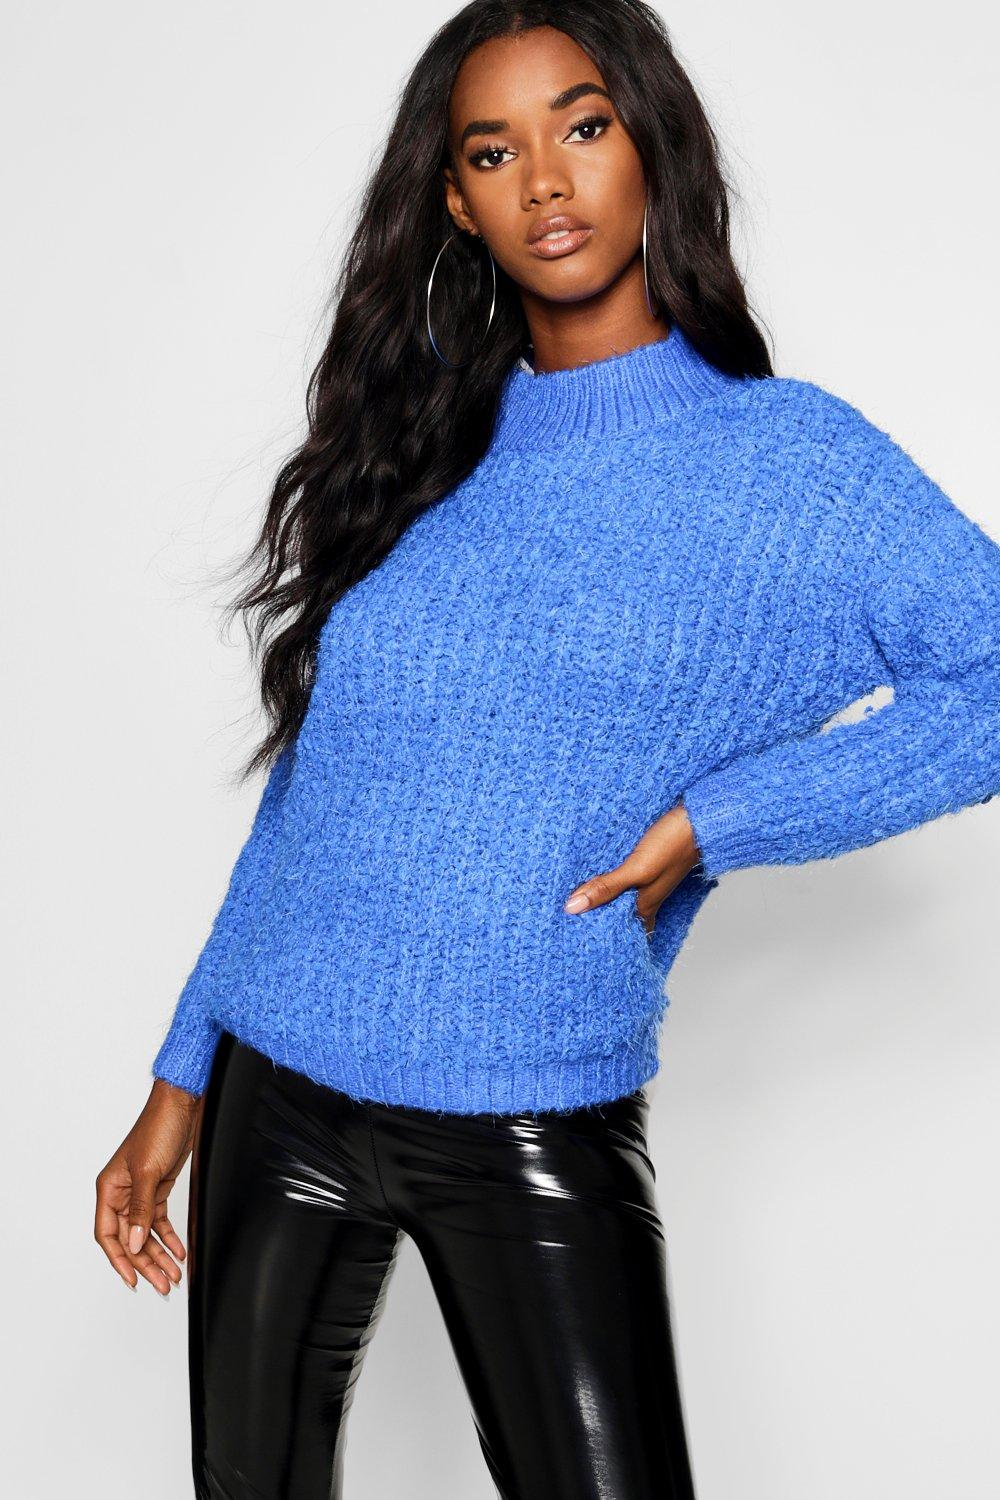 Boucle Chenille cobalt Jumper Feather Knit WHrwgq0EH